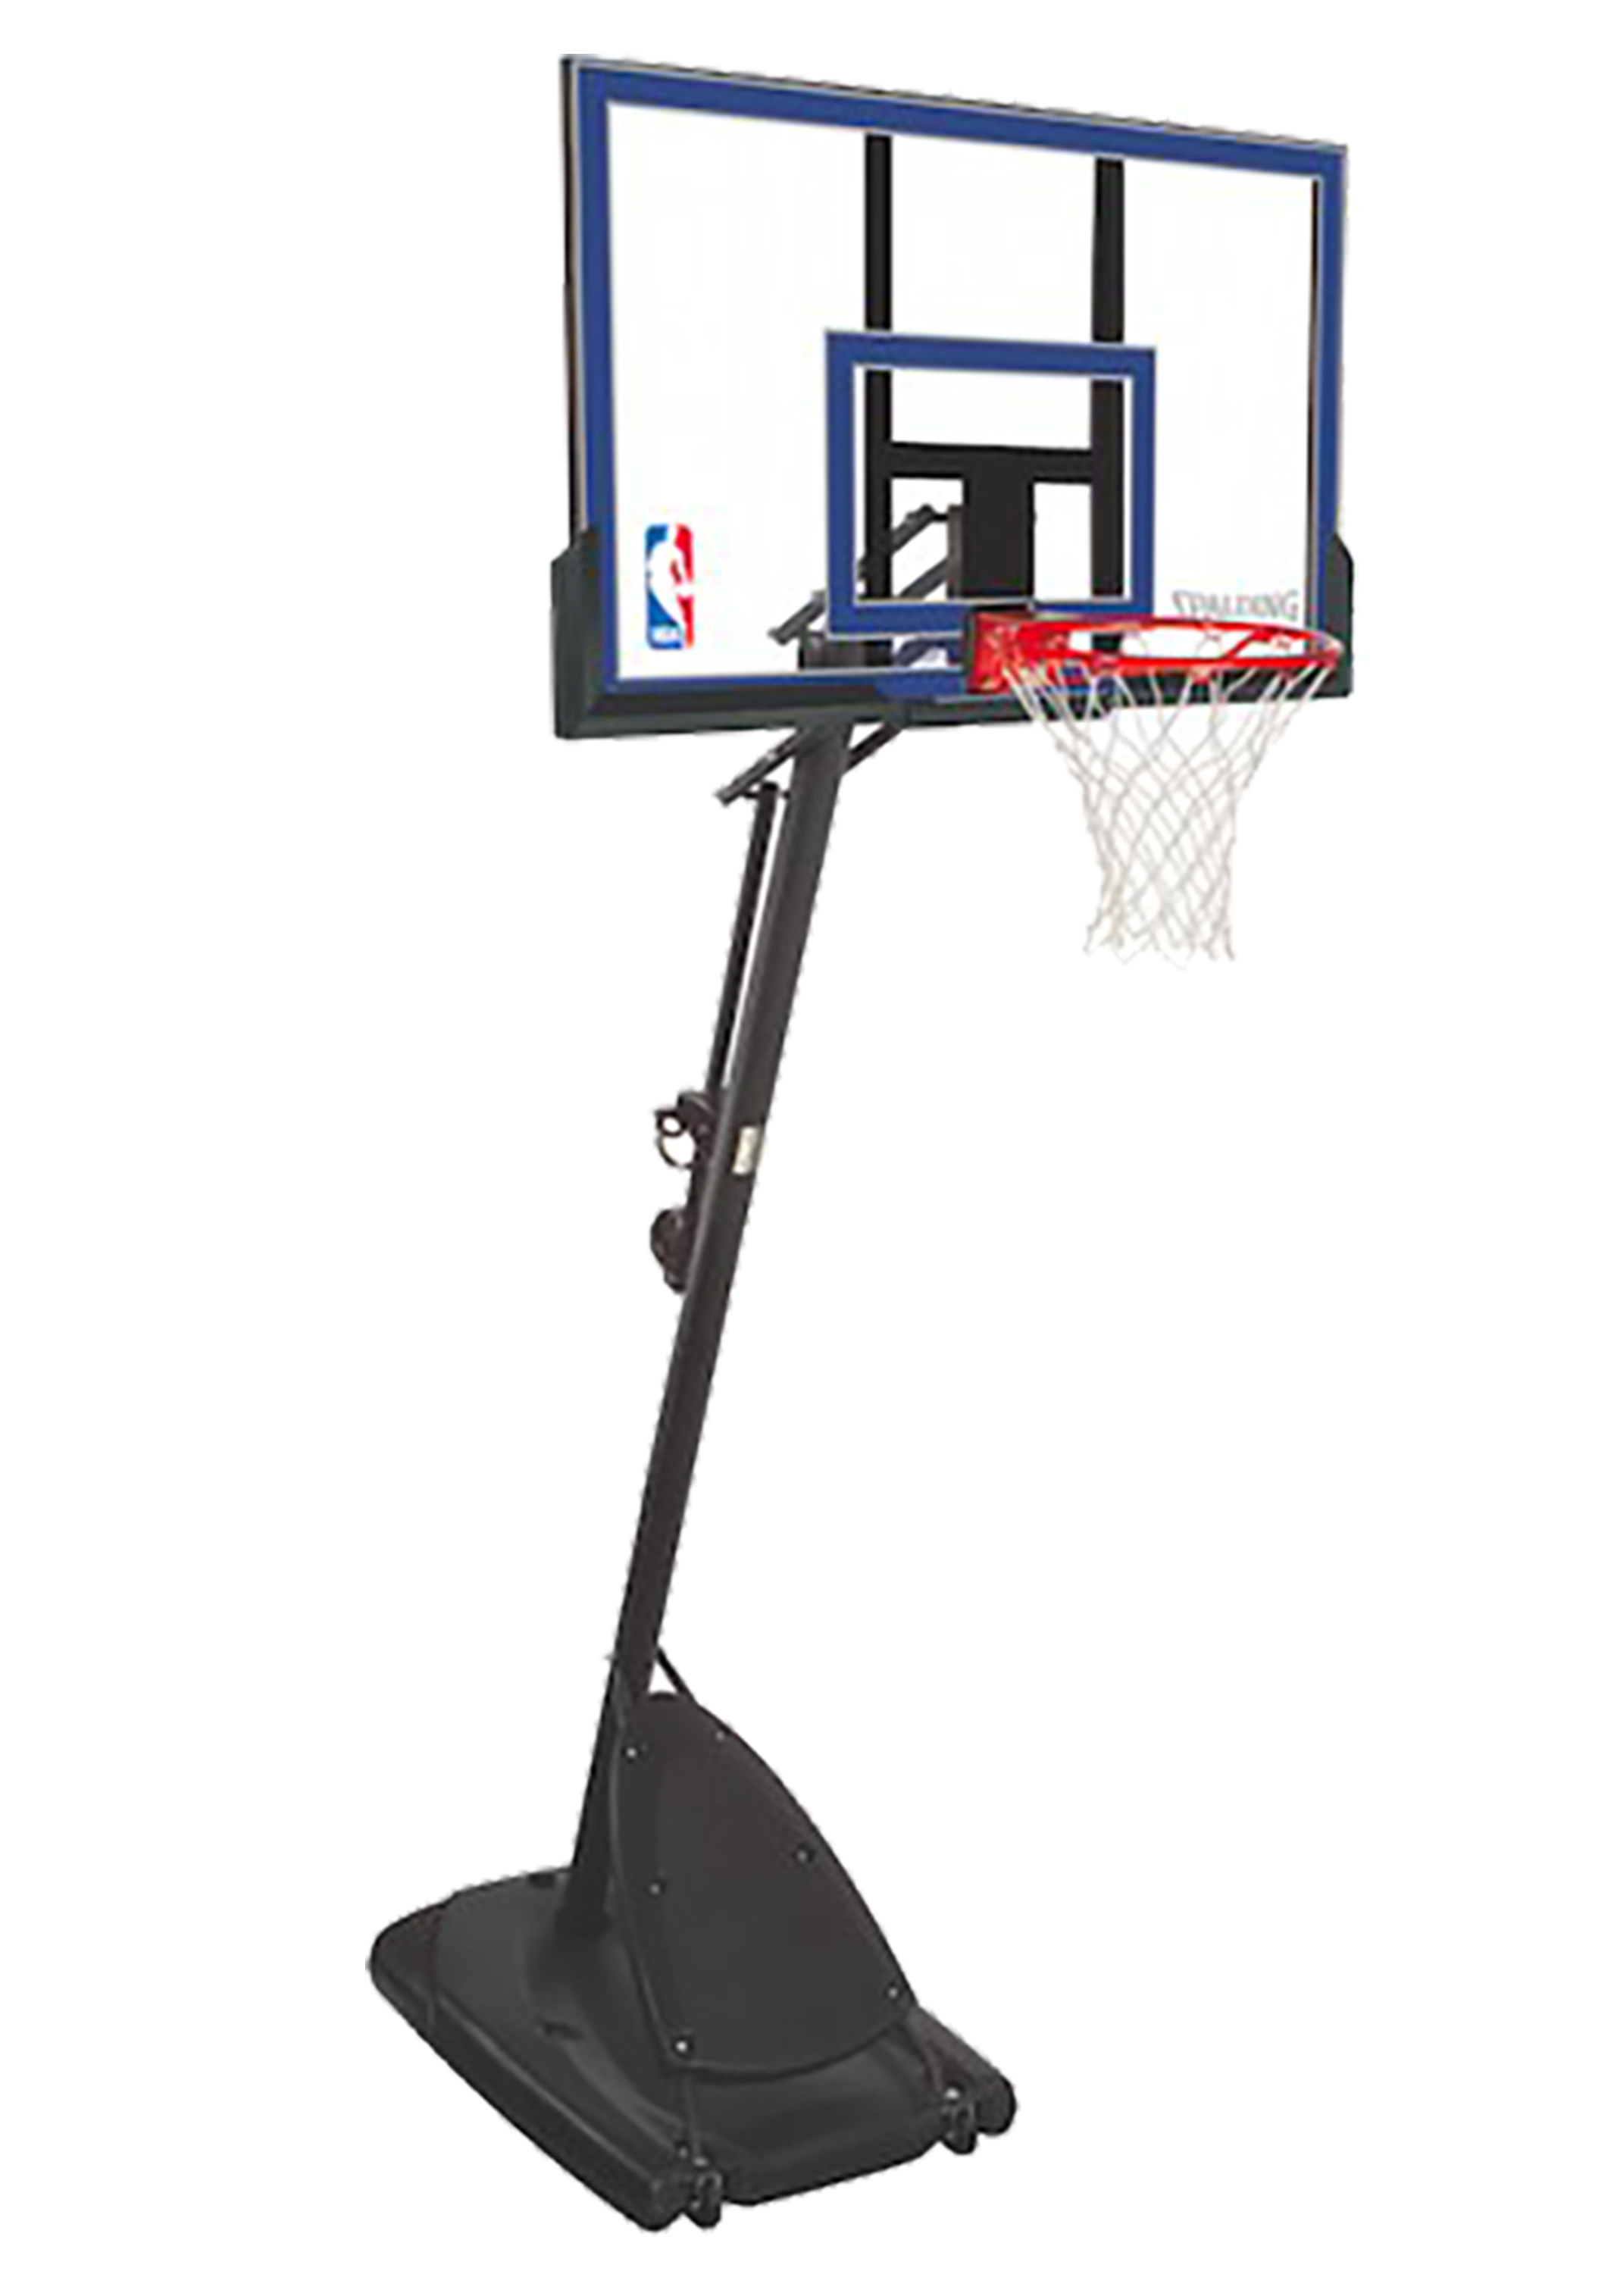 SPALDING 50 INCH ACRYLIC PORTABLE BASKETBALL SYSTEM <br> 50INCH image